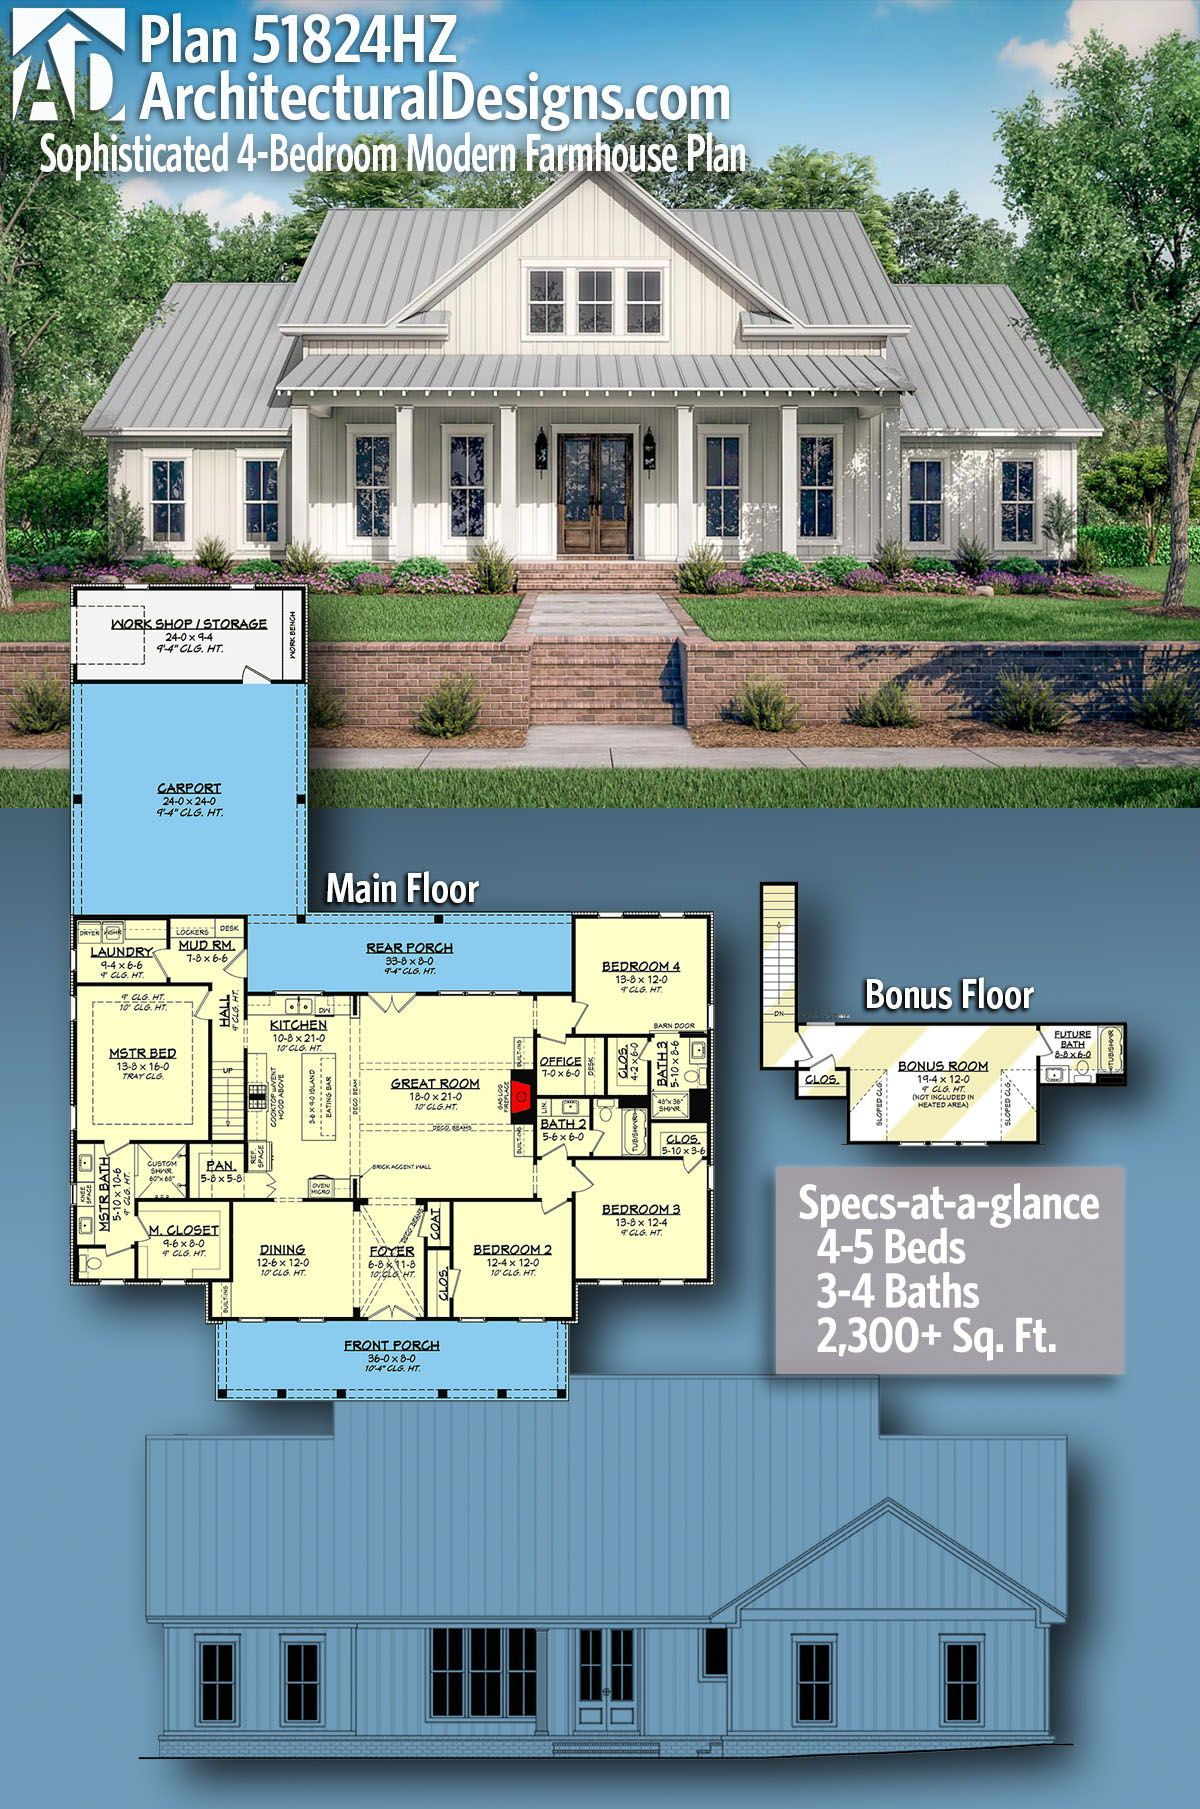 Plan 51824HZ Sophisticated 4Bedroom Modern Farmhouse